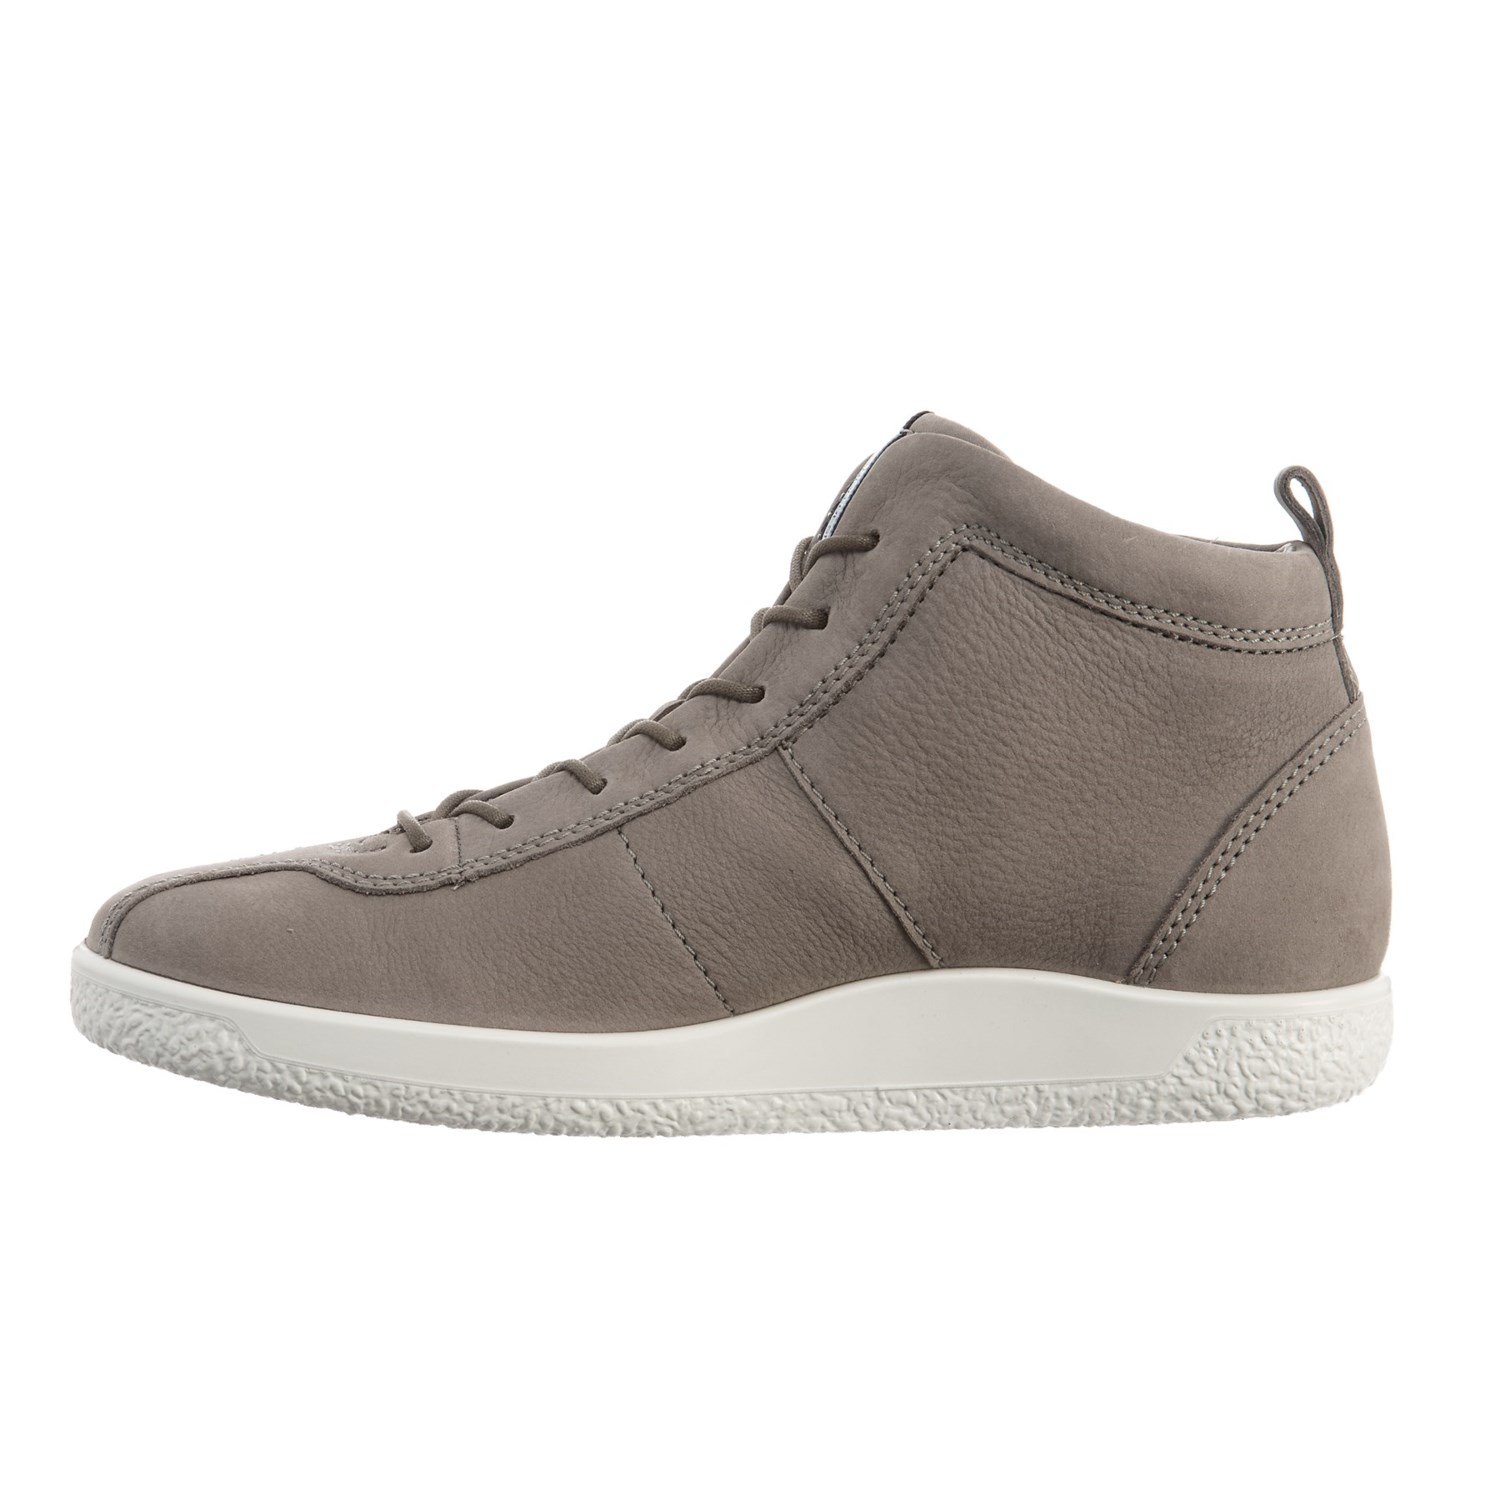 ECCO Soft 1 Sneaker(Women's) -Crown Jewel Droid Prices Cheap Price Outlet Deals Cheap The Cheapest Cheap Geniue Stockist Clearance Cheap jGe1wcFoI